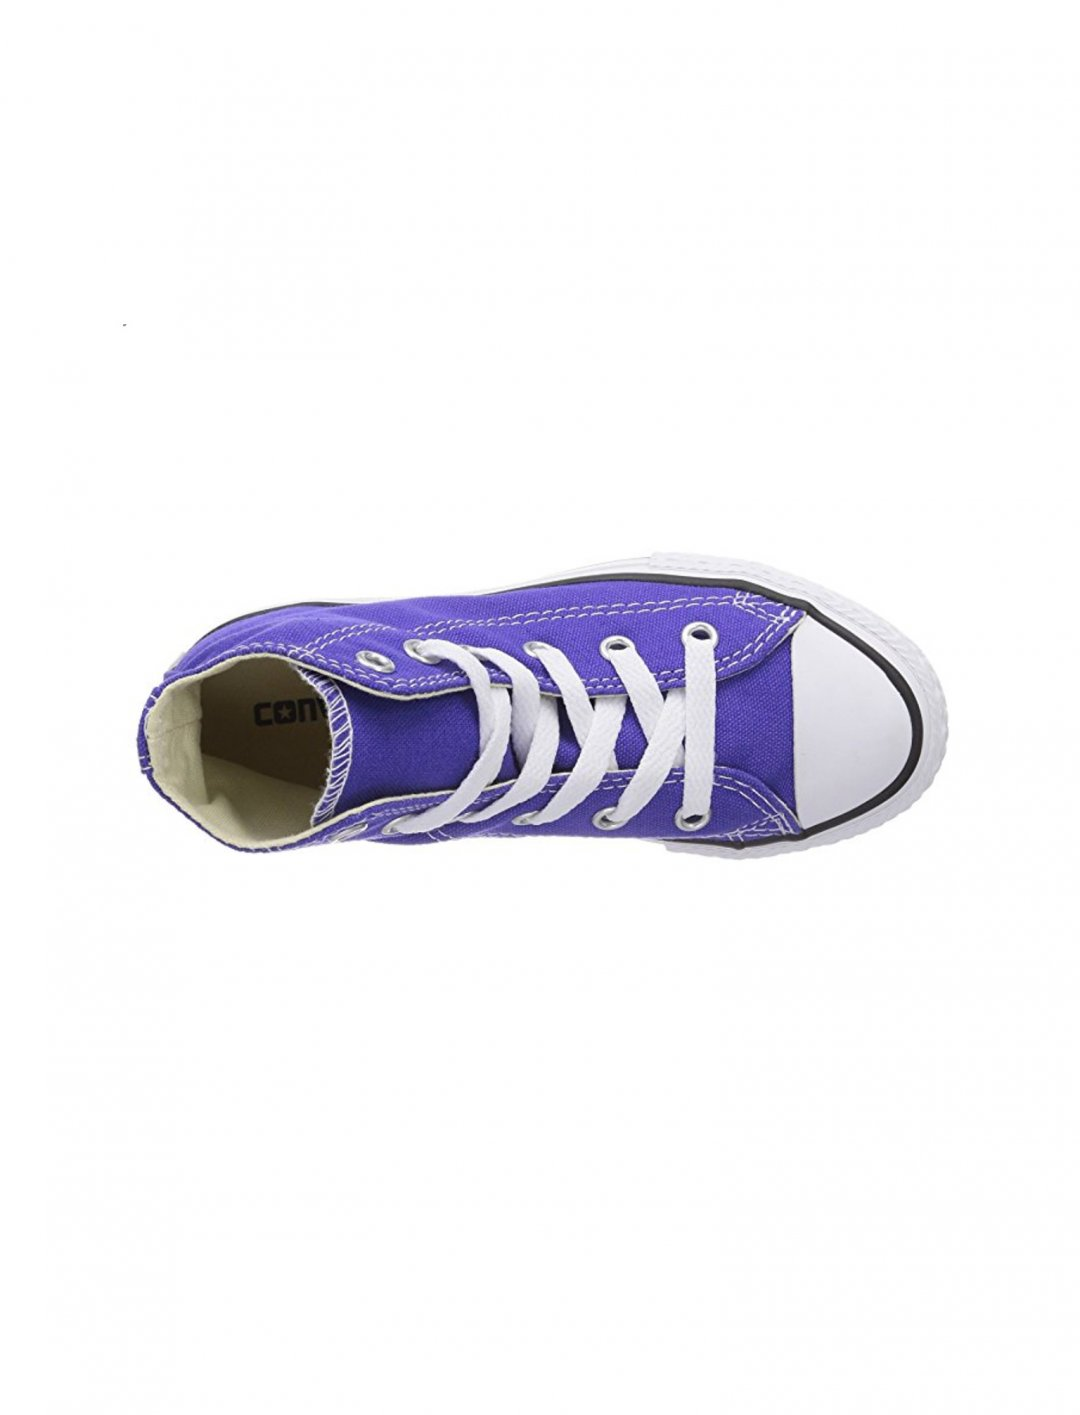 "Unisex Children's Trainers {""id"":12,""product_section_id"":1,""name"":""Shoes"",""order"":12} Converse"